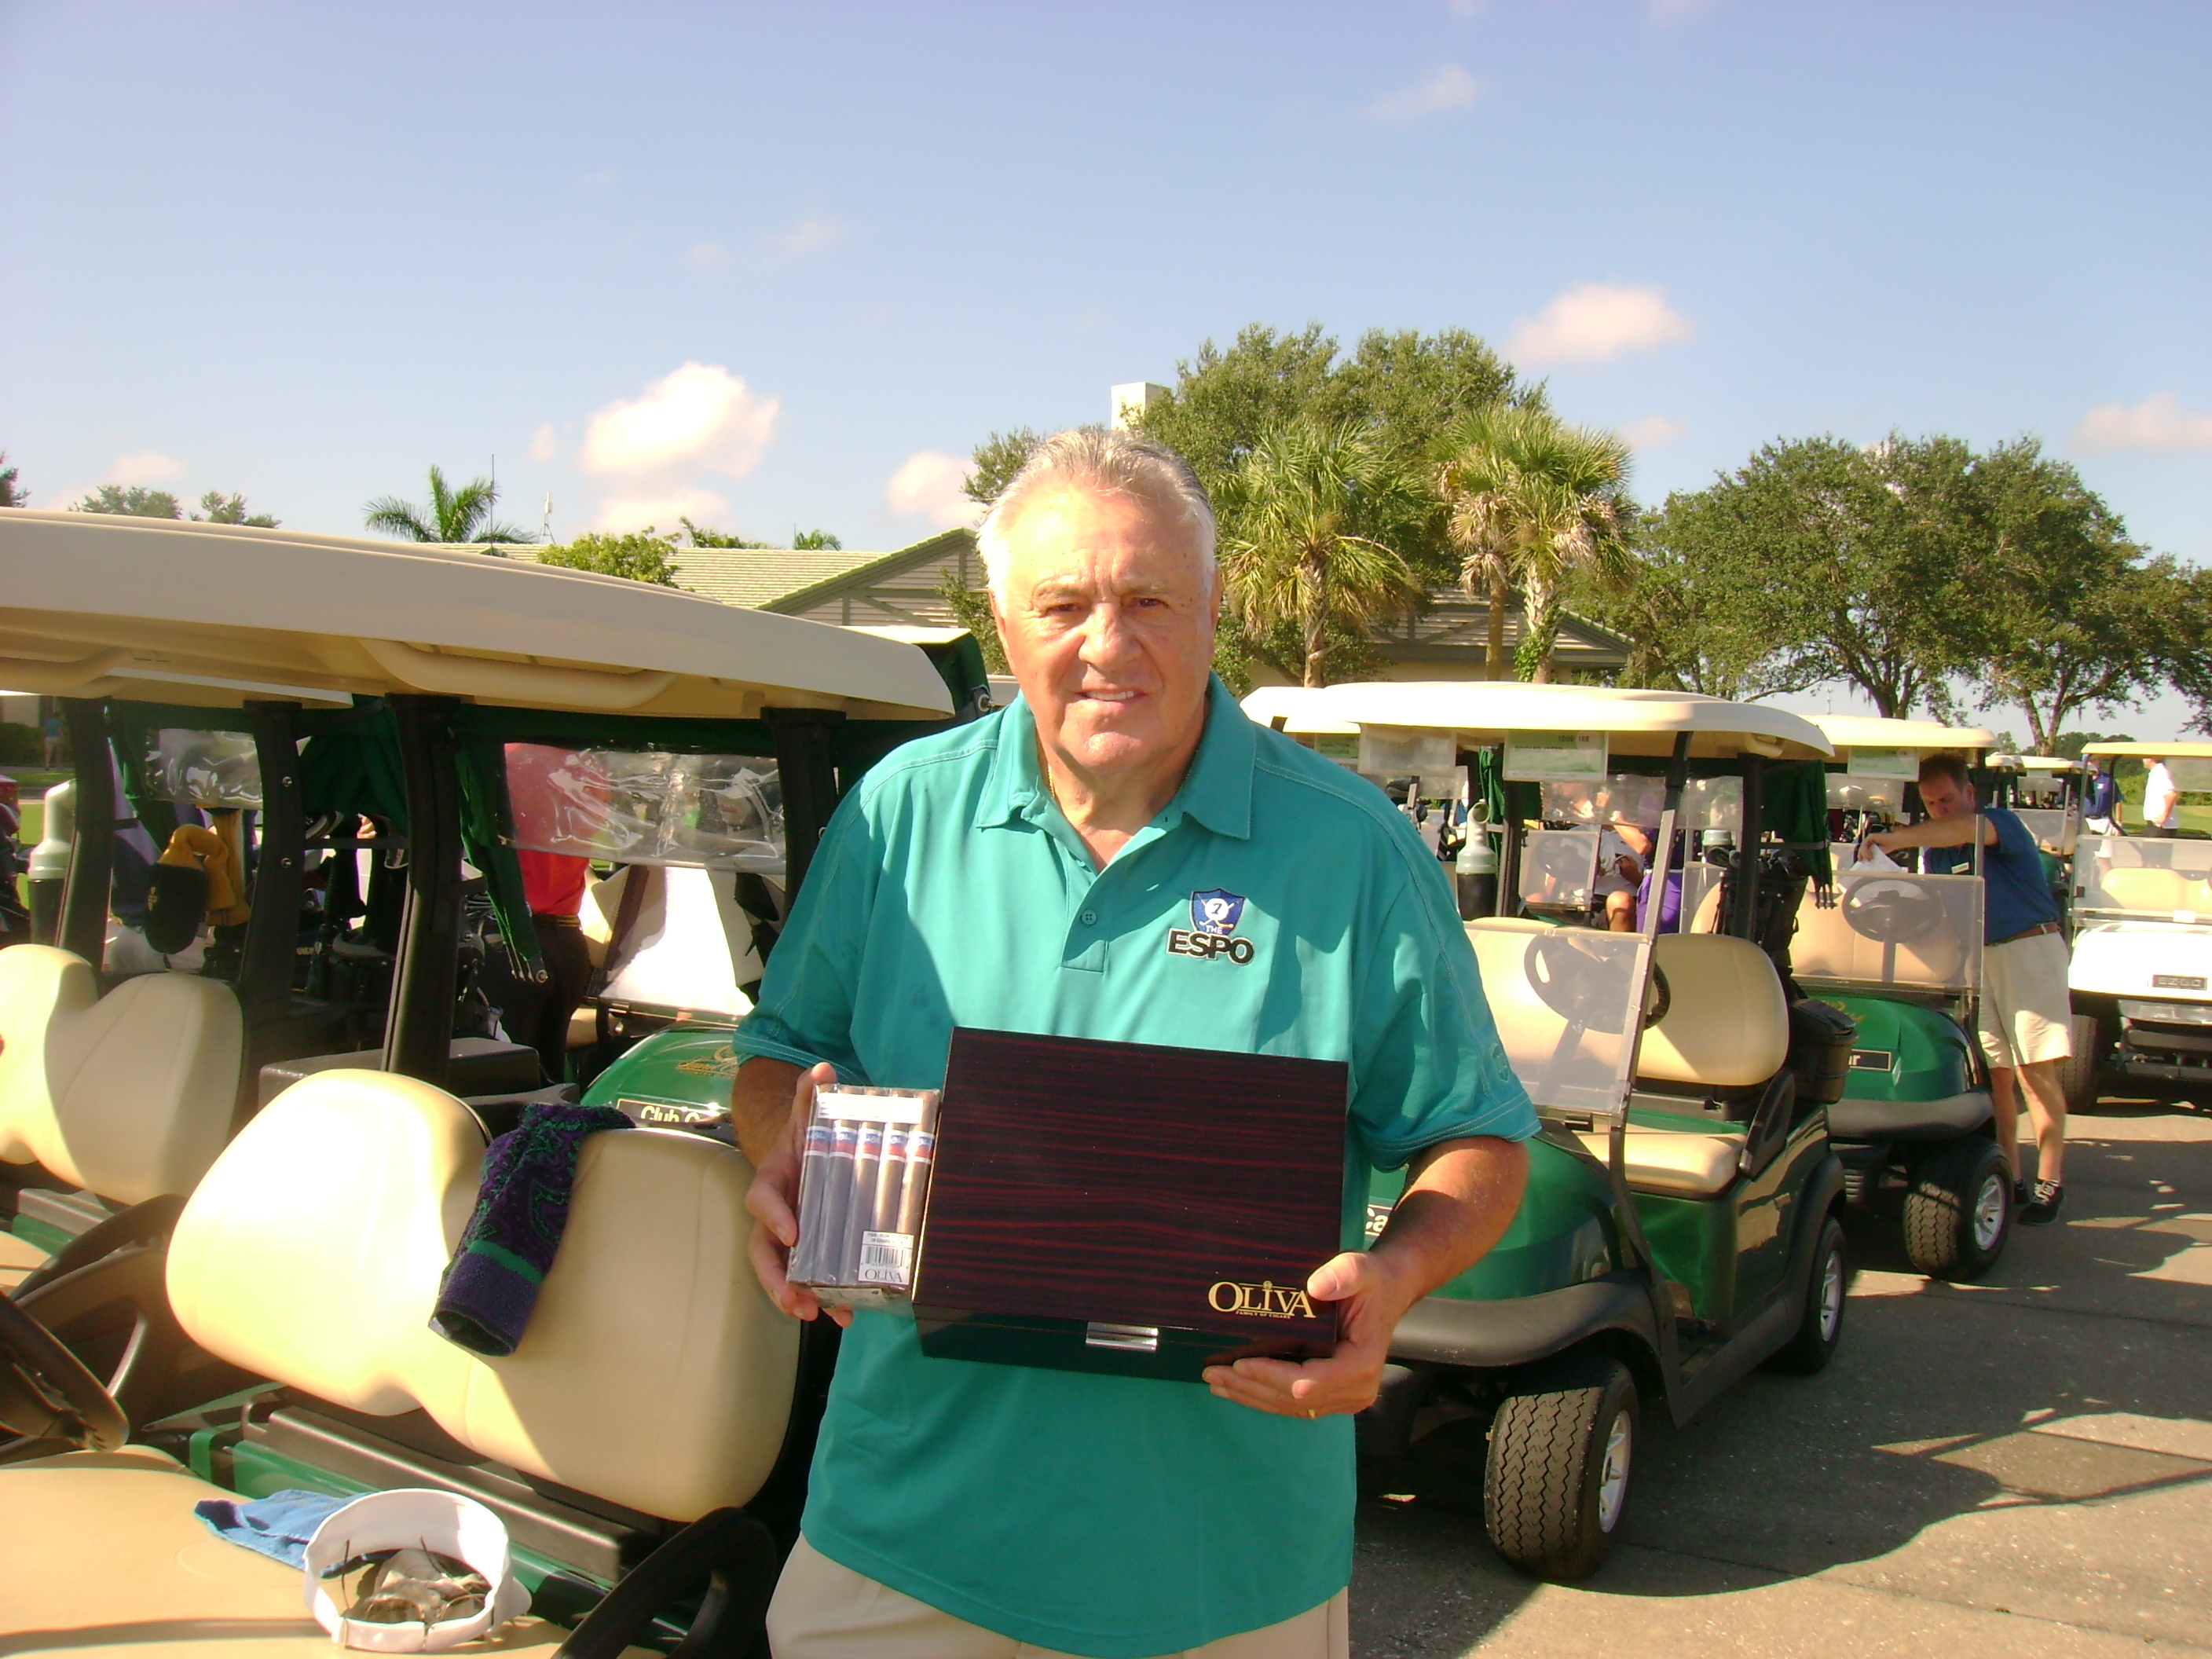 OLIVA CONNECTICUT RESERVE EXCLUSIVE CIGAR SPONSOR FOR THE PHIL ESPOSITO GOLF TOURNAMENT